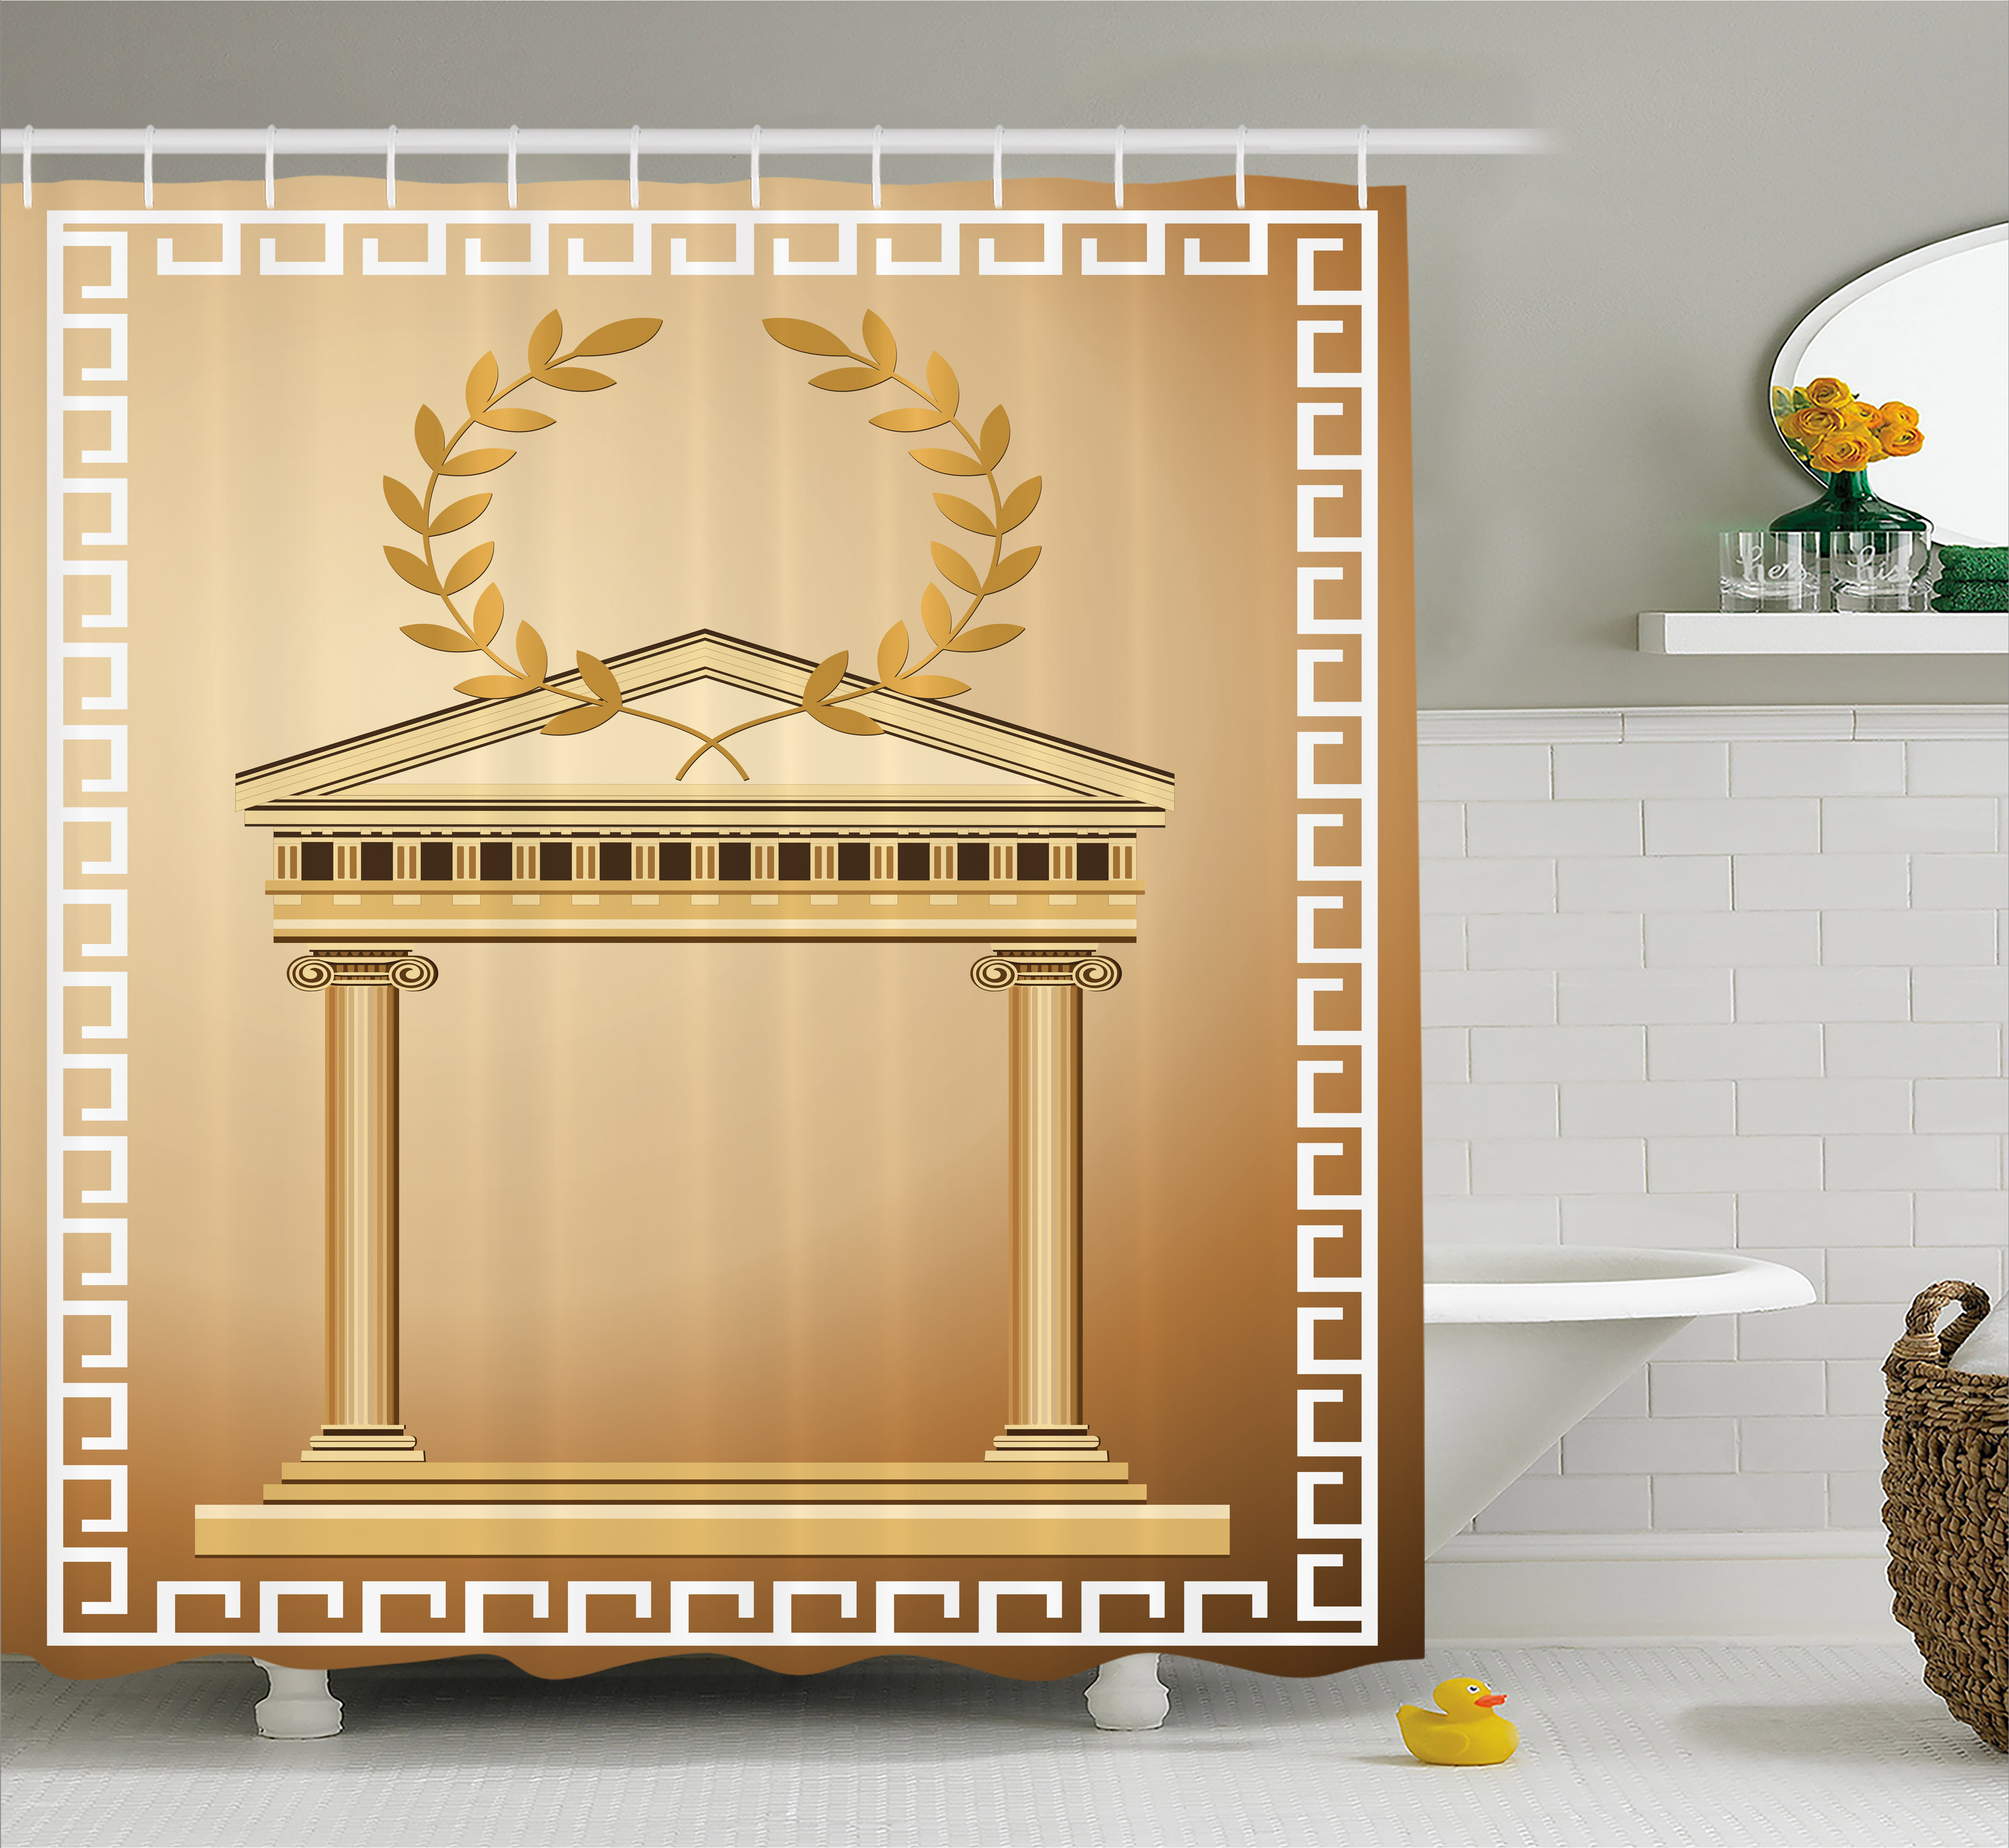 aca687469db5 Toga Party Shower Curtain, Antique Temple with Roman Olive Branch and Greek  Architecture Motif, Fabric Bathroom Set with Hooks, 69W X 75L Inches Long,  ...